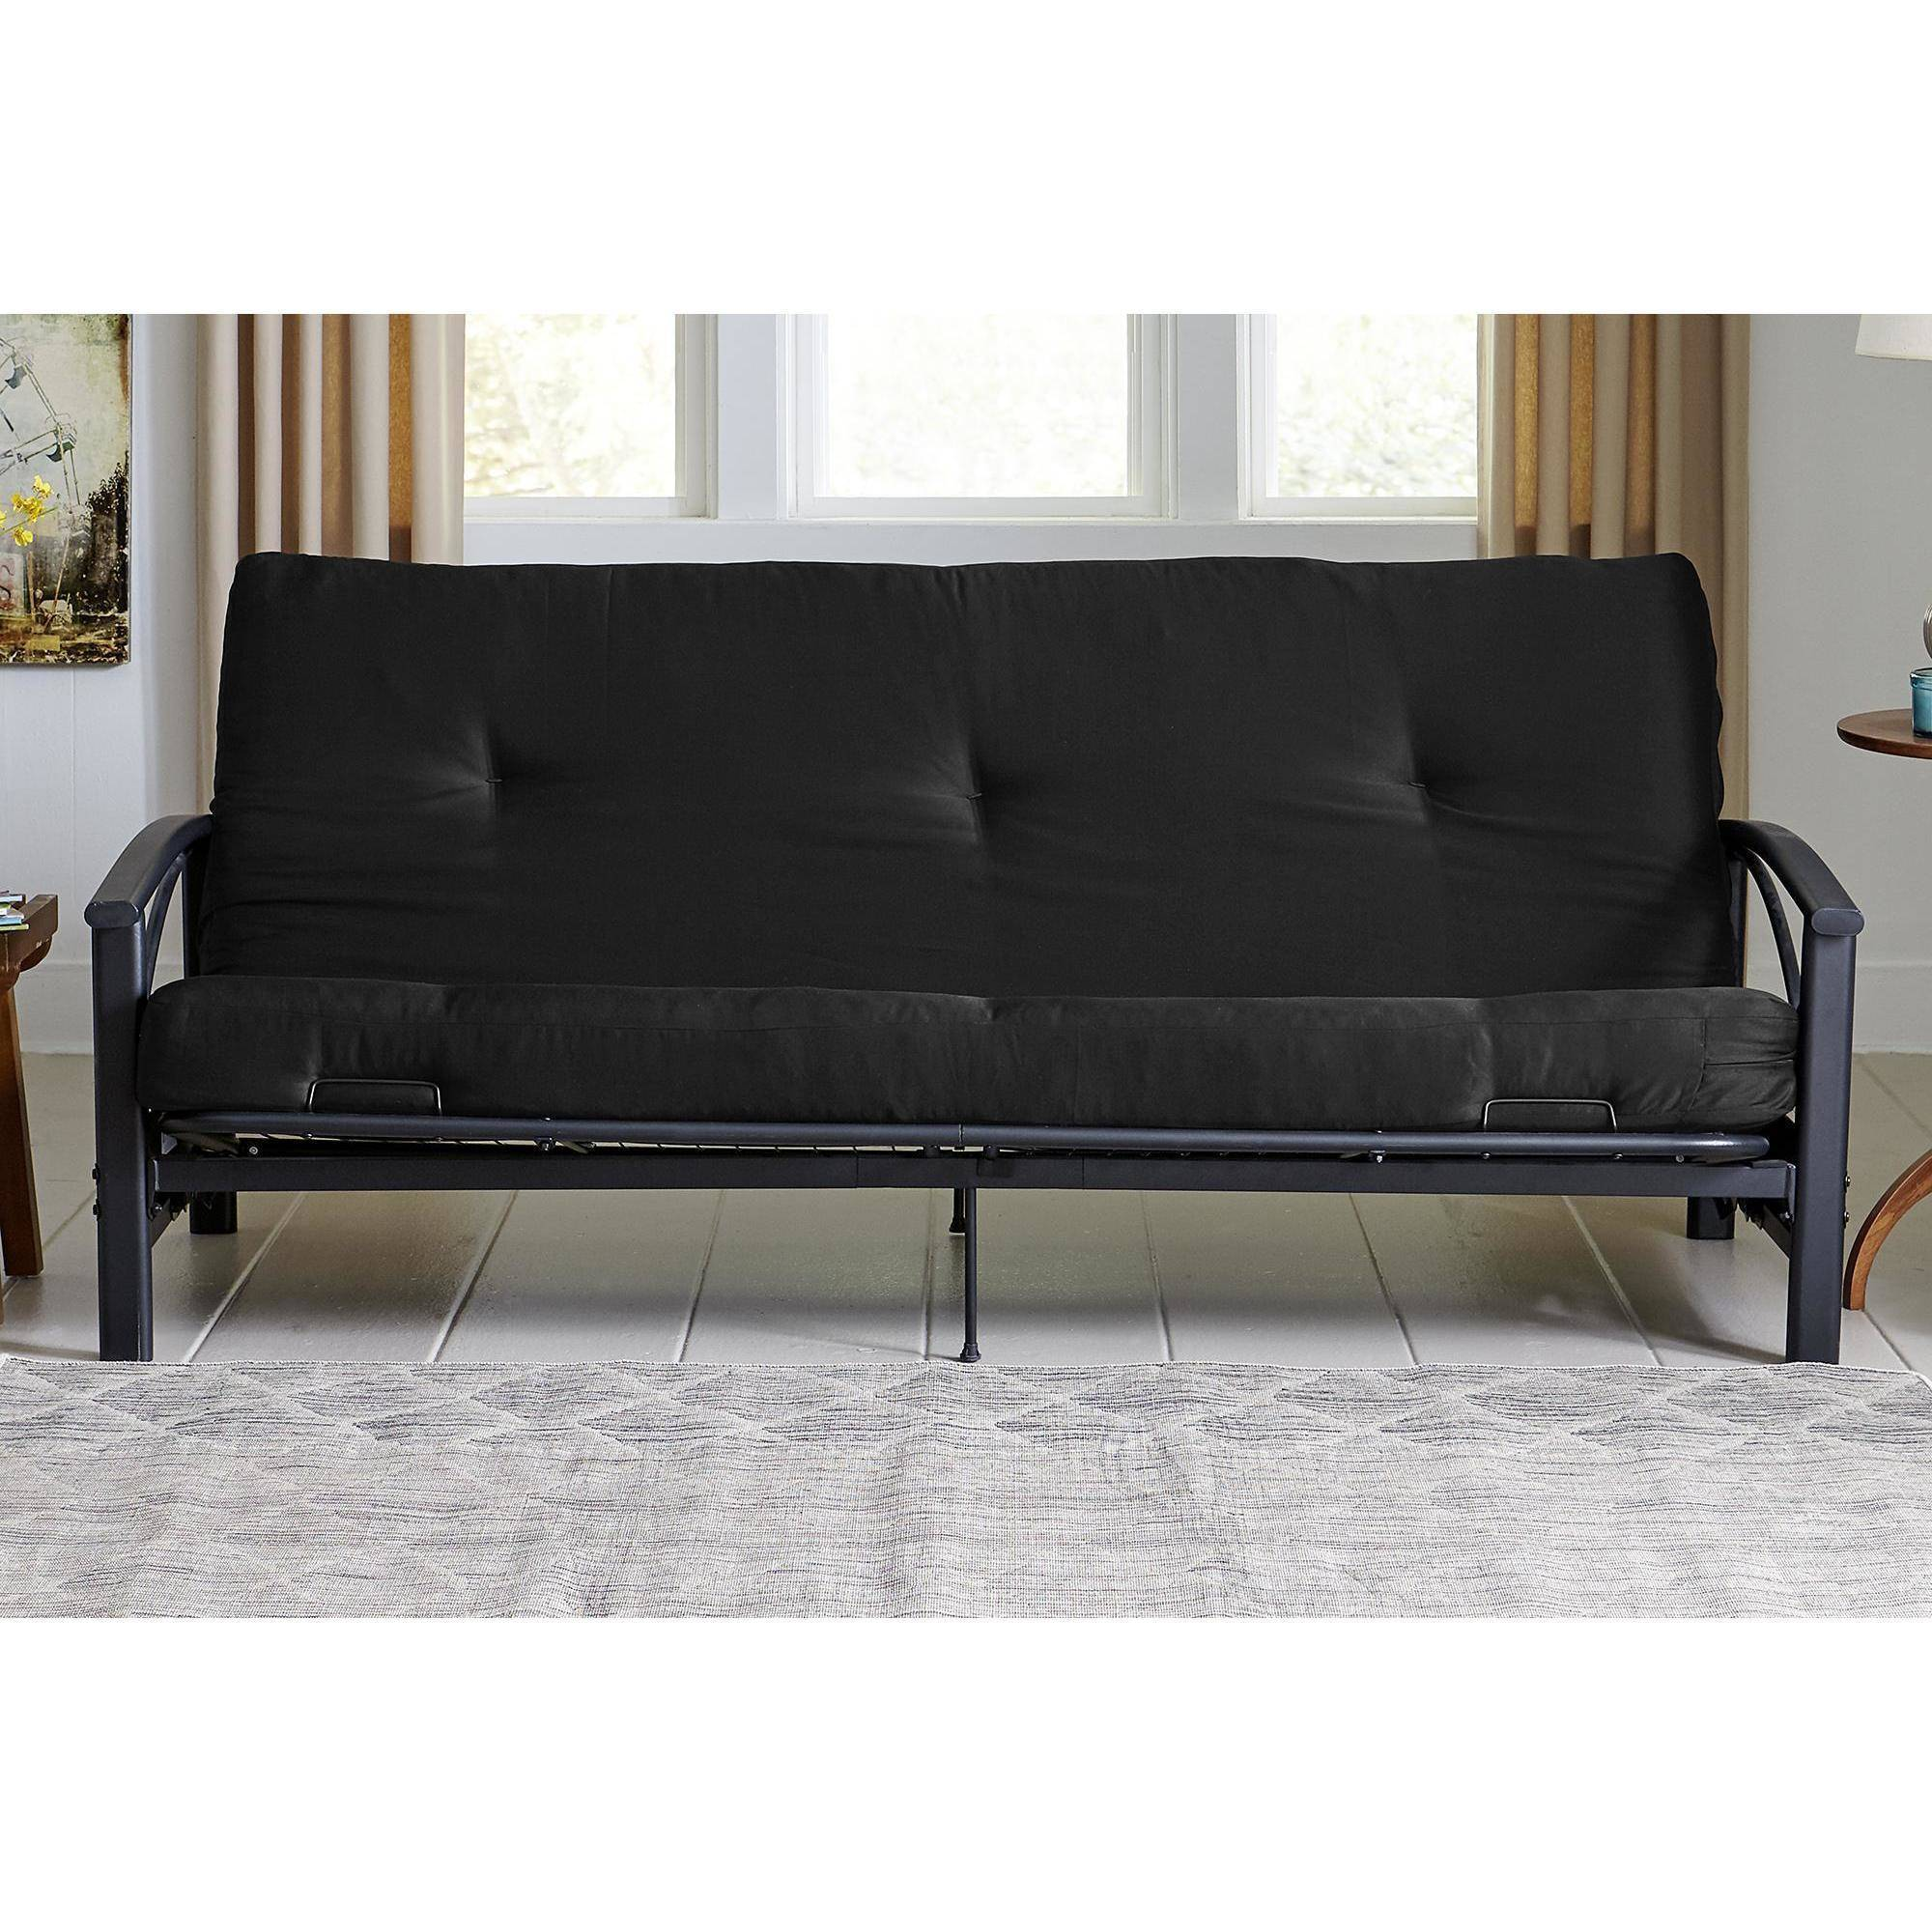 queen with size twin awesome ikea designs futon pin gorgeous mattress